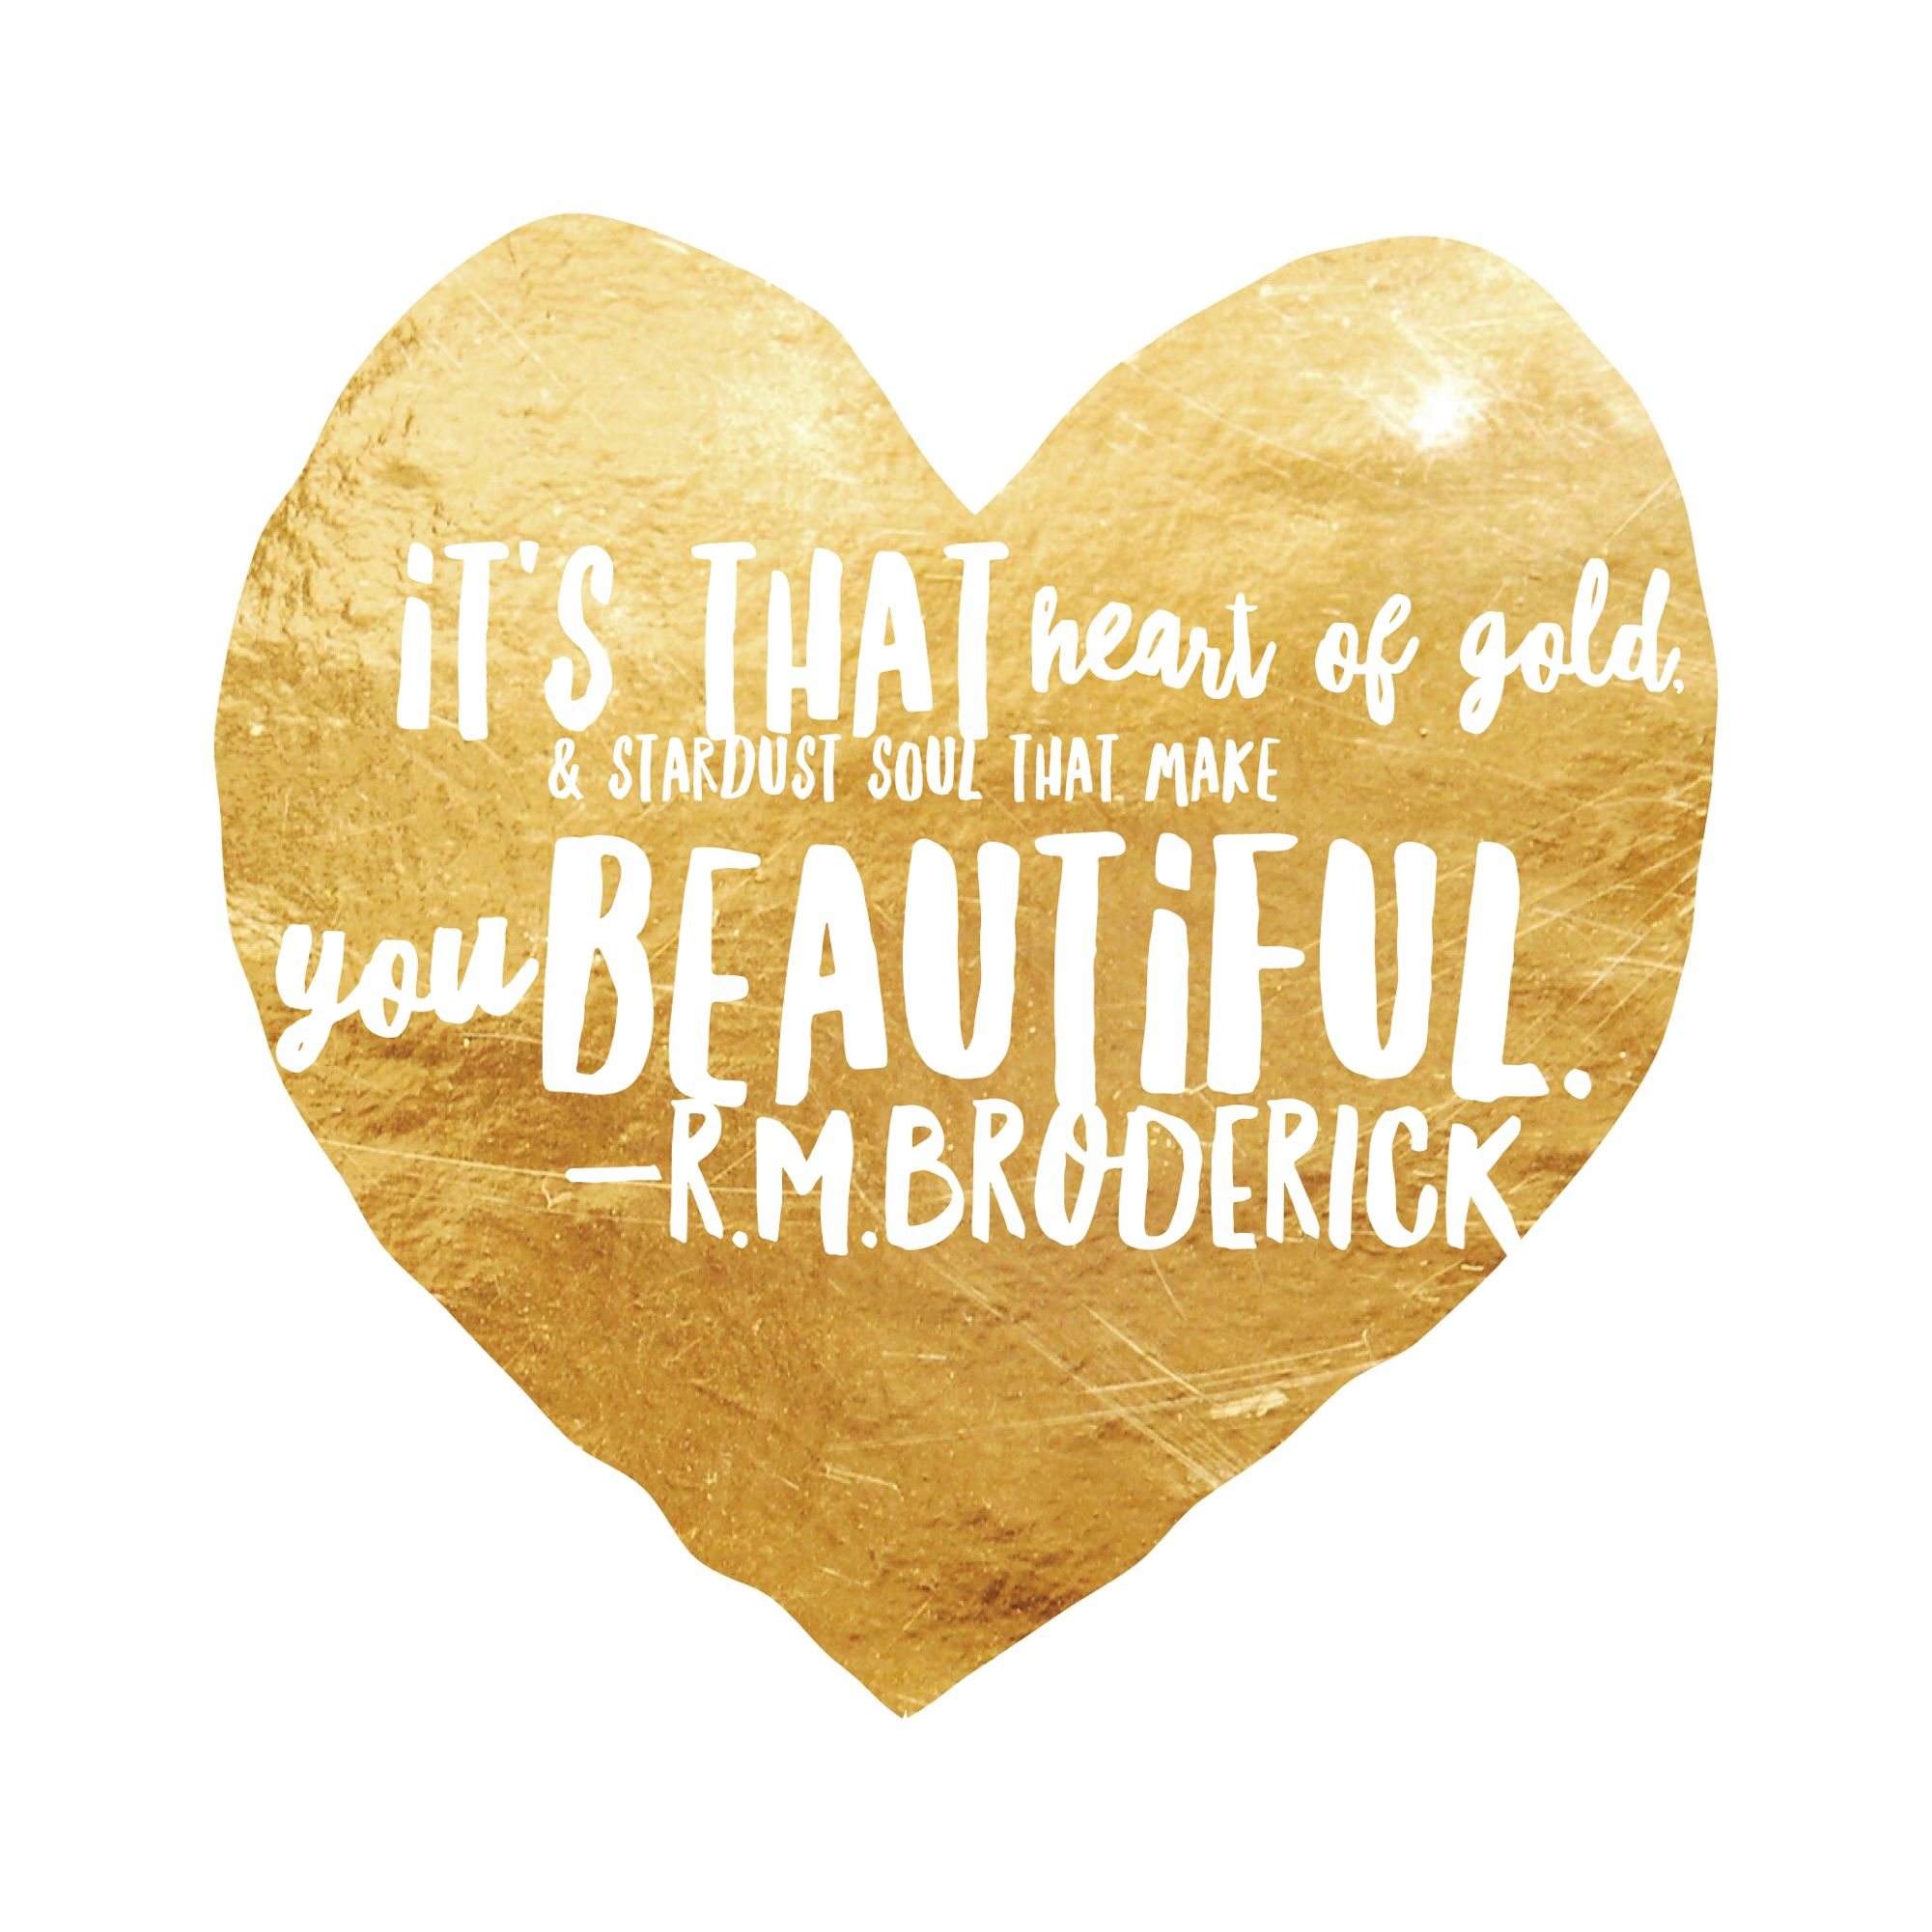 Heart Of Gold Inspirational Quotes About Change Self Love Inspirational Quotes